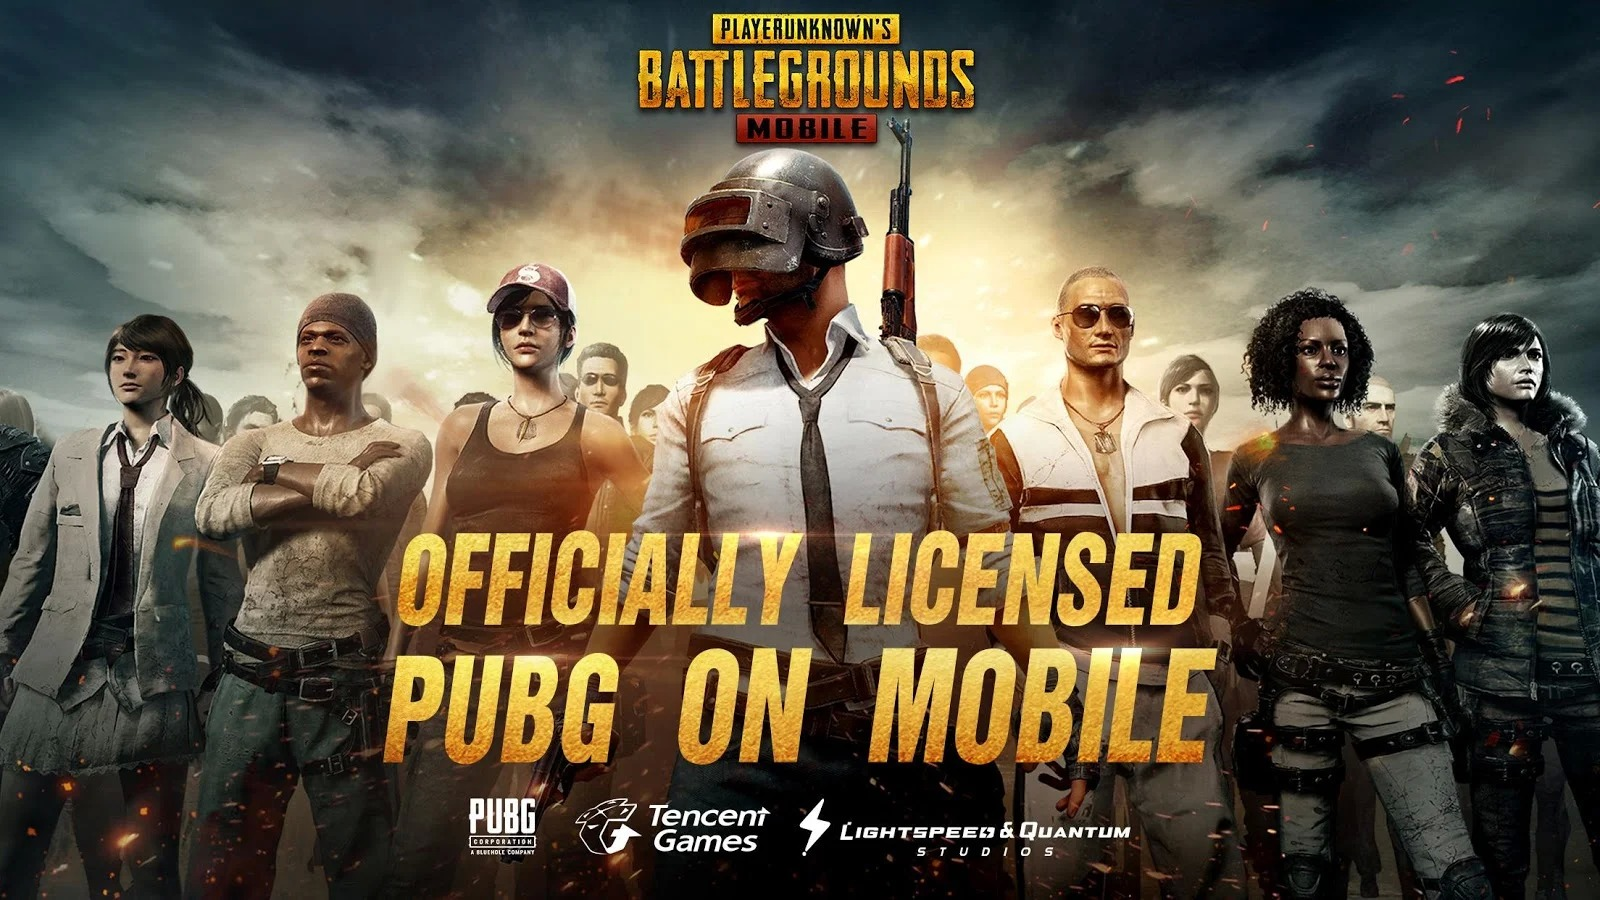 Download Pubg Mobile For Iphone Ipad Android Released: Here's How To Download PUBG Mobile In The West On IOS And